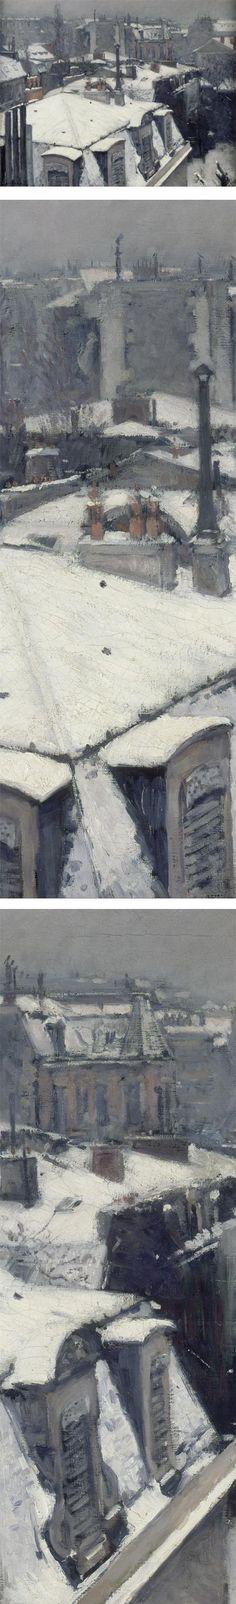 Eye Candy for Today: Caillebotte's rooftops in snow